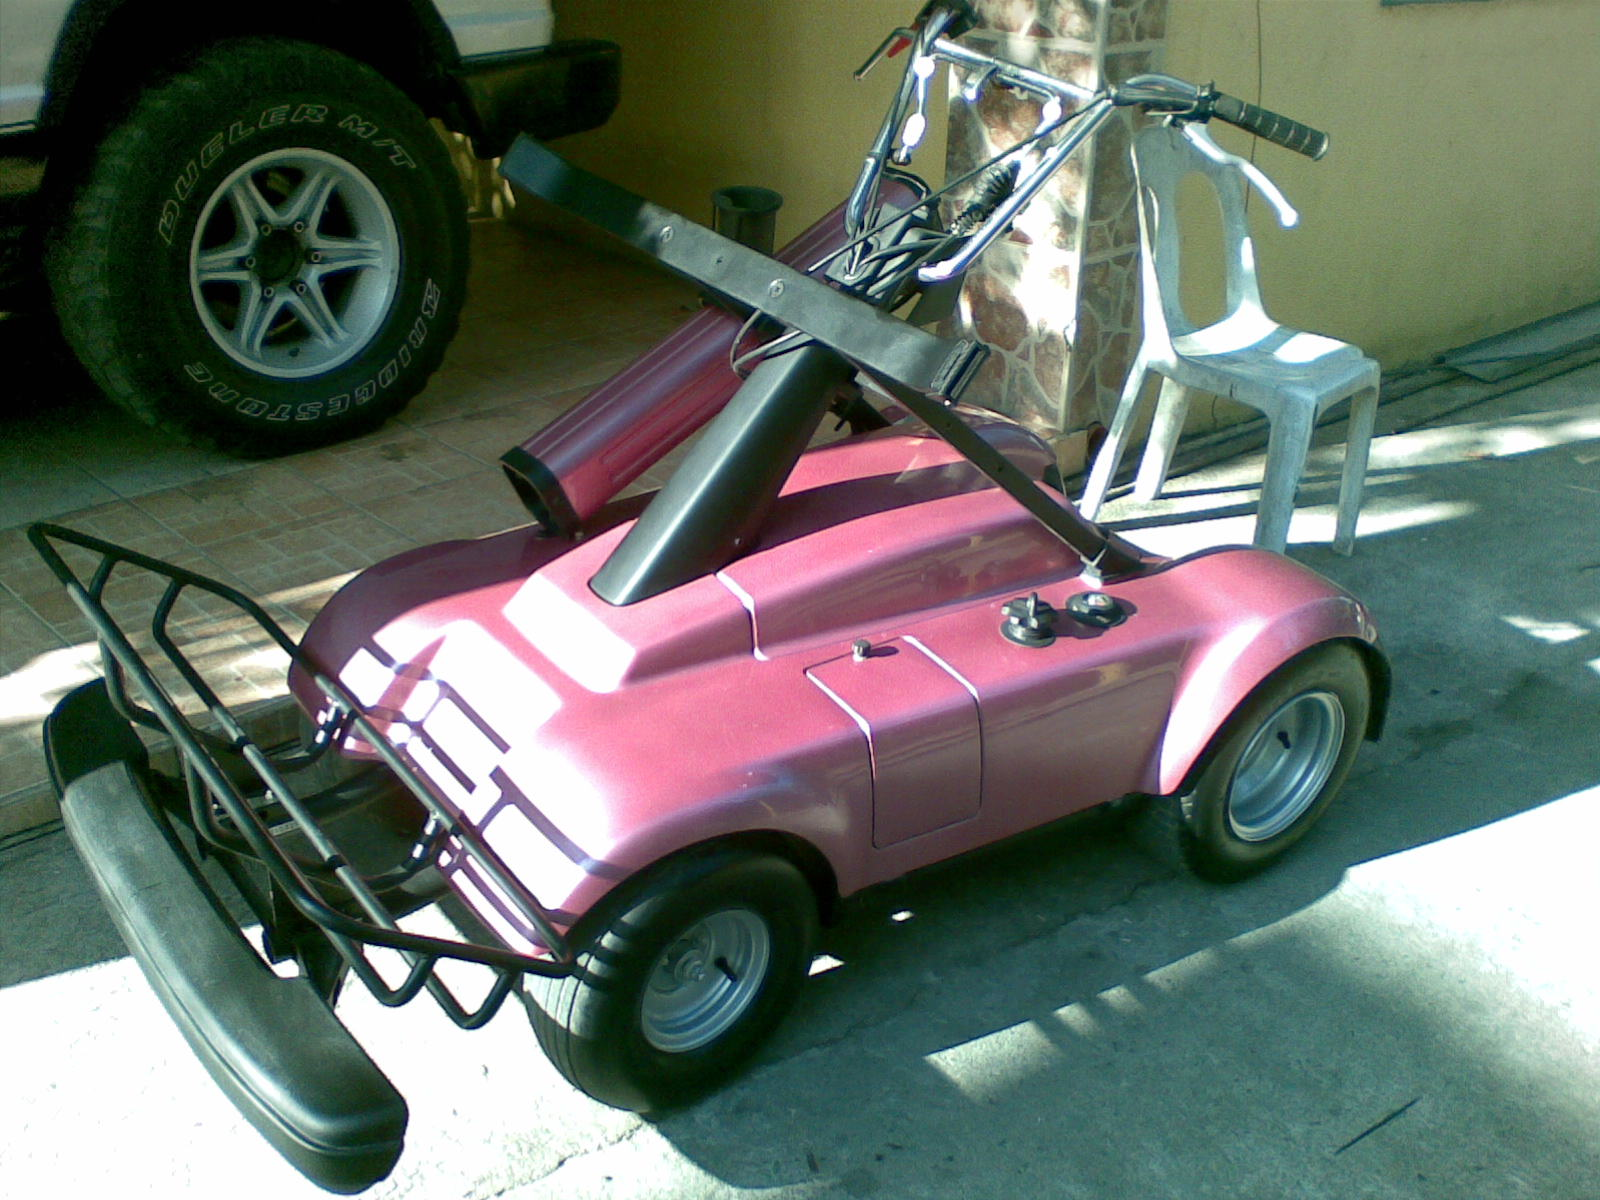 File:Yamaha pink golf cart.jpg - Wikimedia Commons on gasoline carts, used carts, ezgo carts, yamaha side by side, custom lifted carts, yamaha passenger carts, yamaha electric carts, gas powered carts, yamaha gas carts, yamaha trailers, yamaha utility,